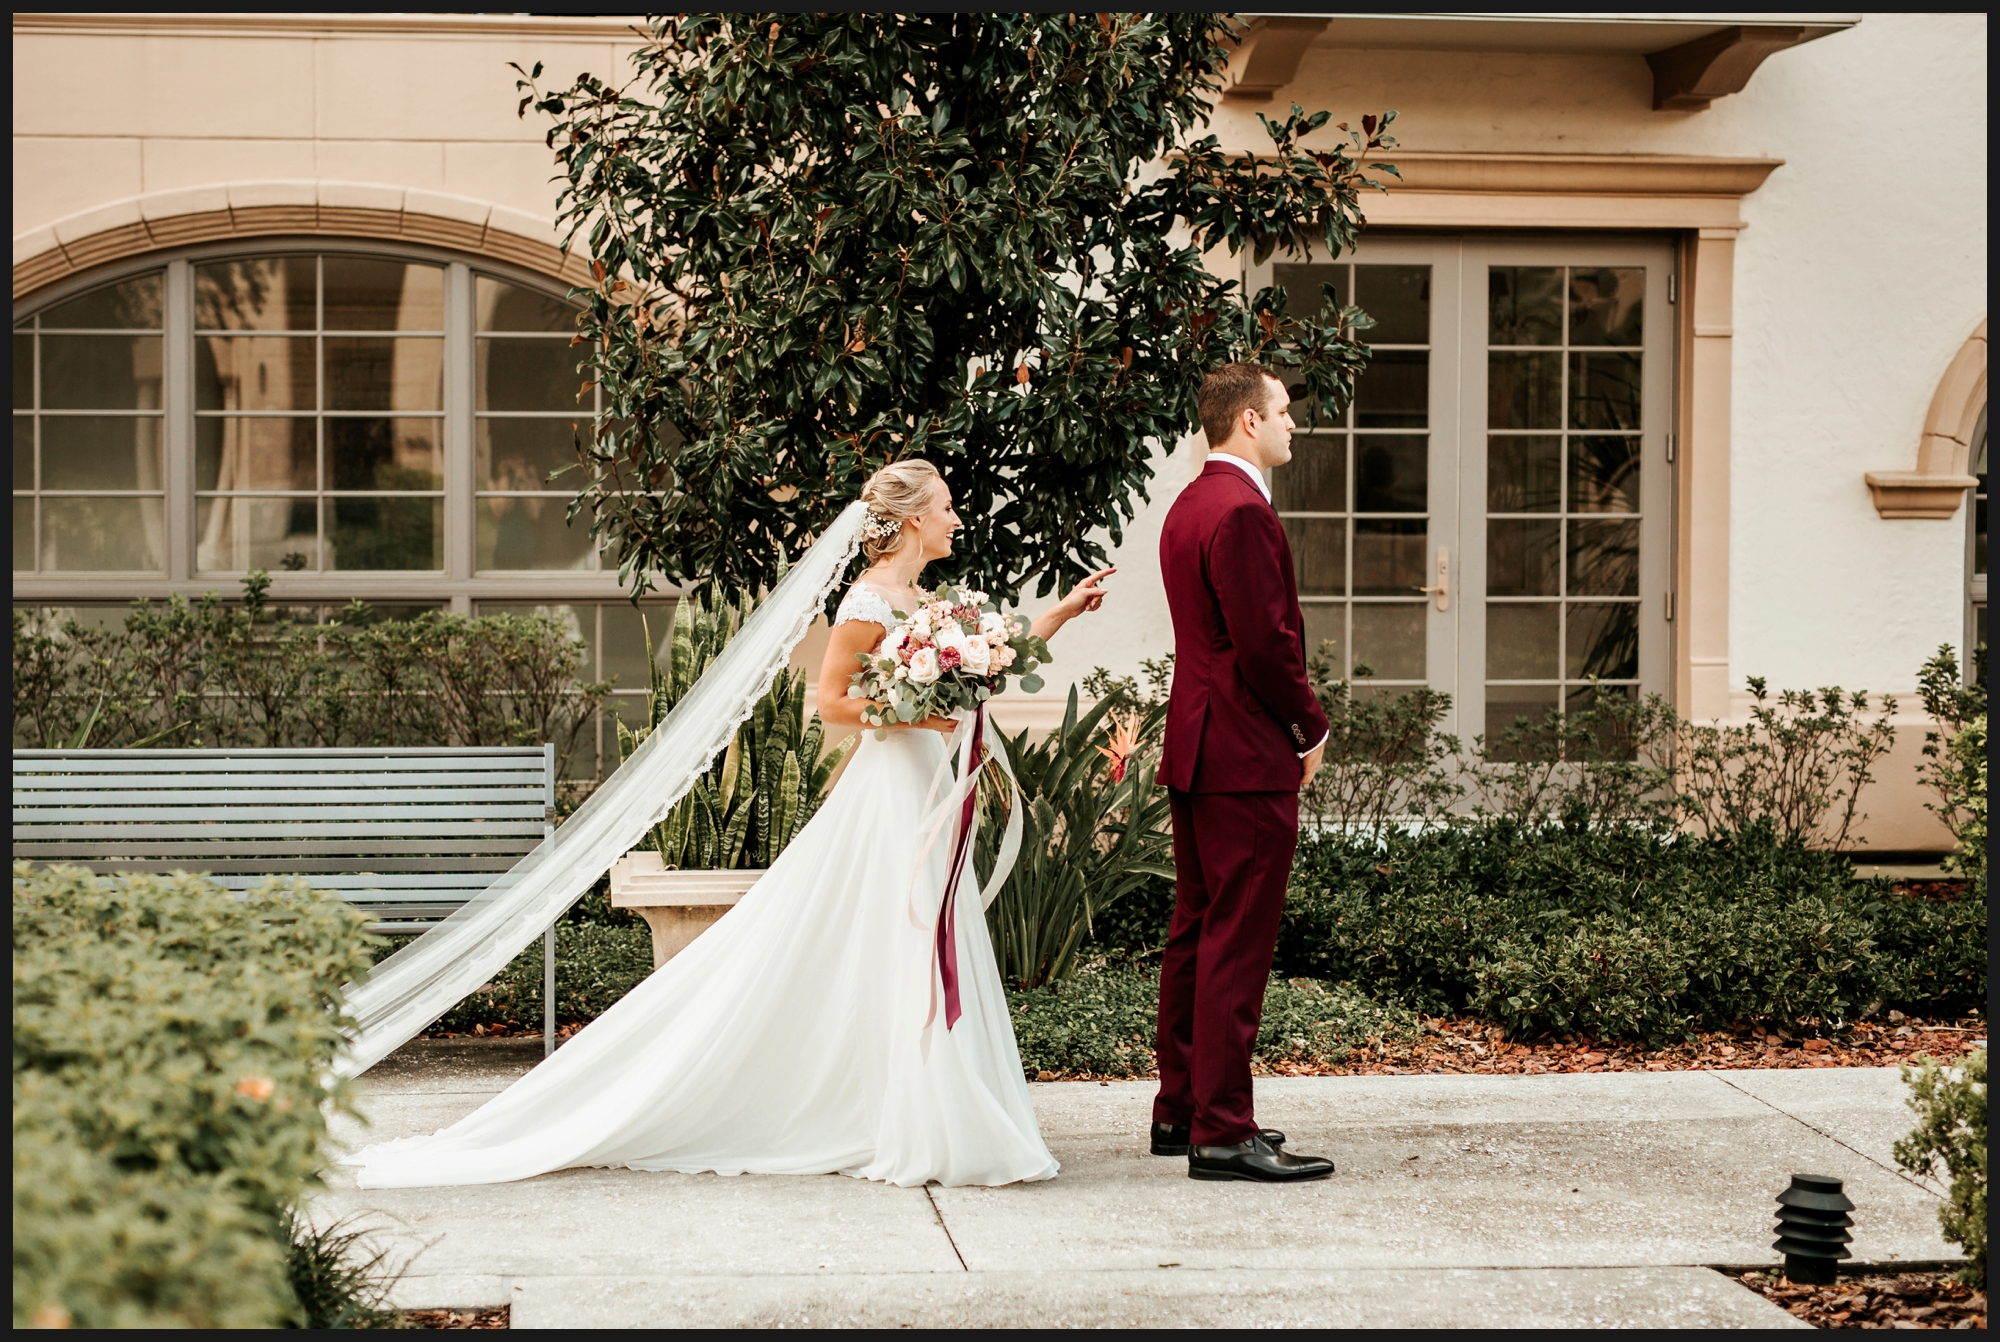 Orlando-Wedding-Photographer-destination-wedding-photographer-florida-wedding-photographer-bohemian-wedding-photographer_0041.jpg